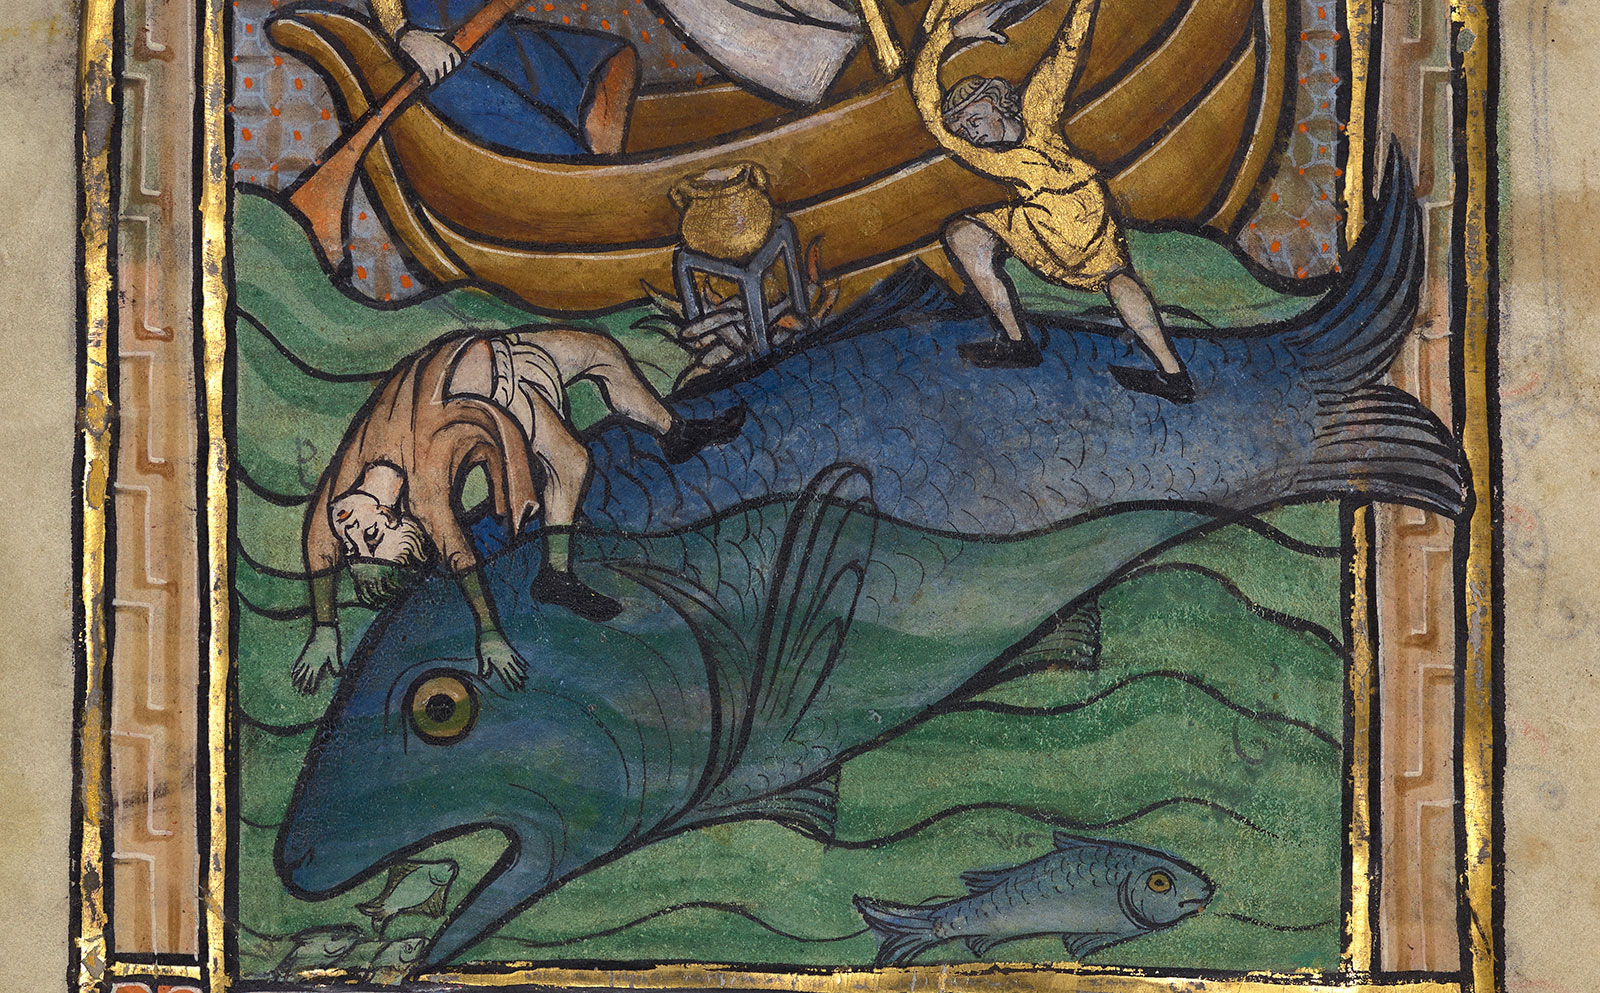 A large fishlike whale carries two terrified sailors down into the depths